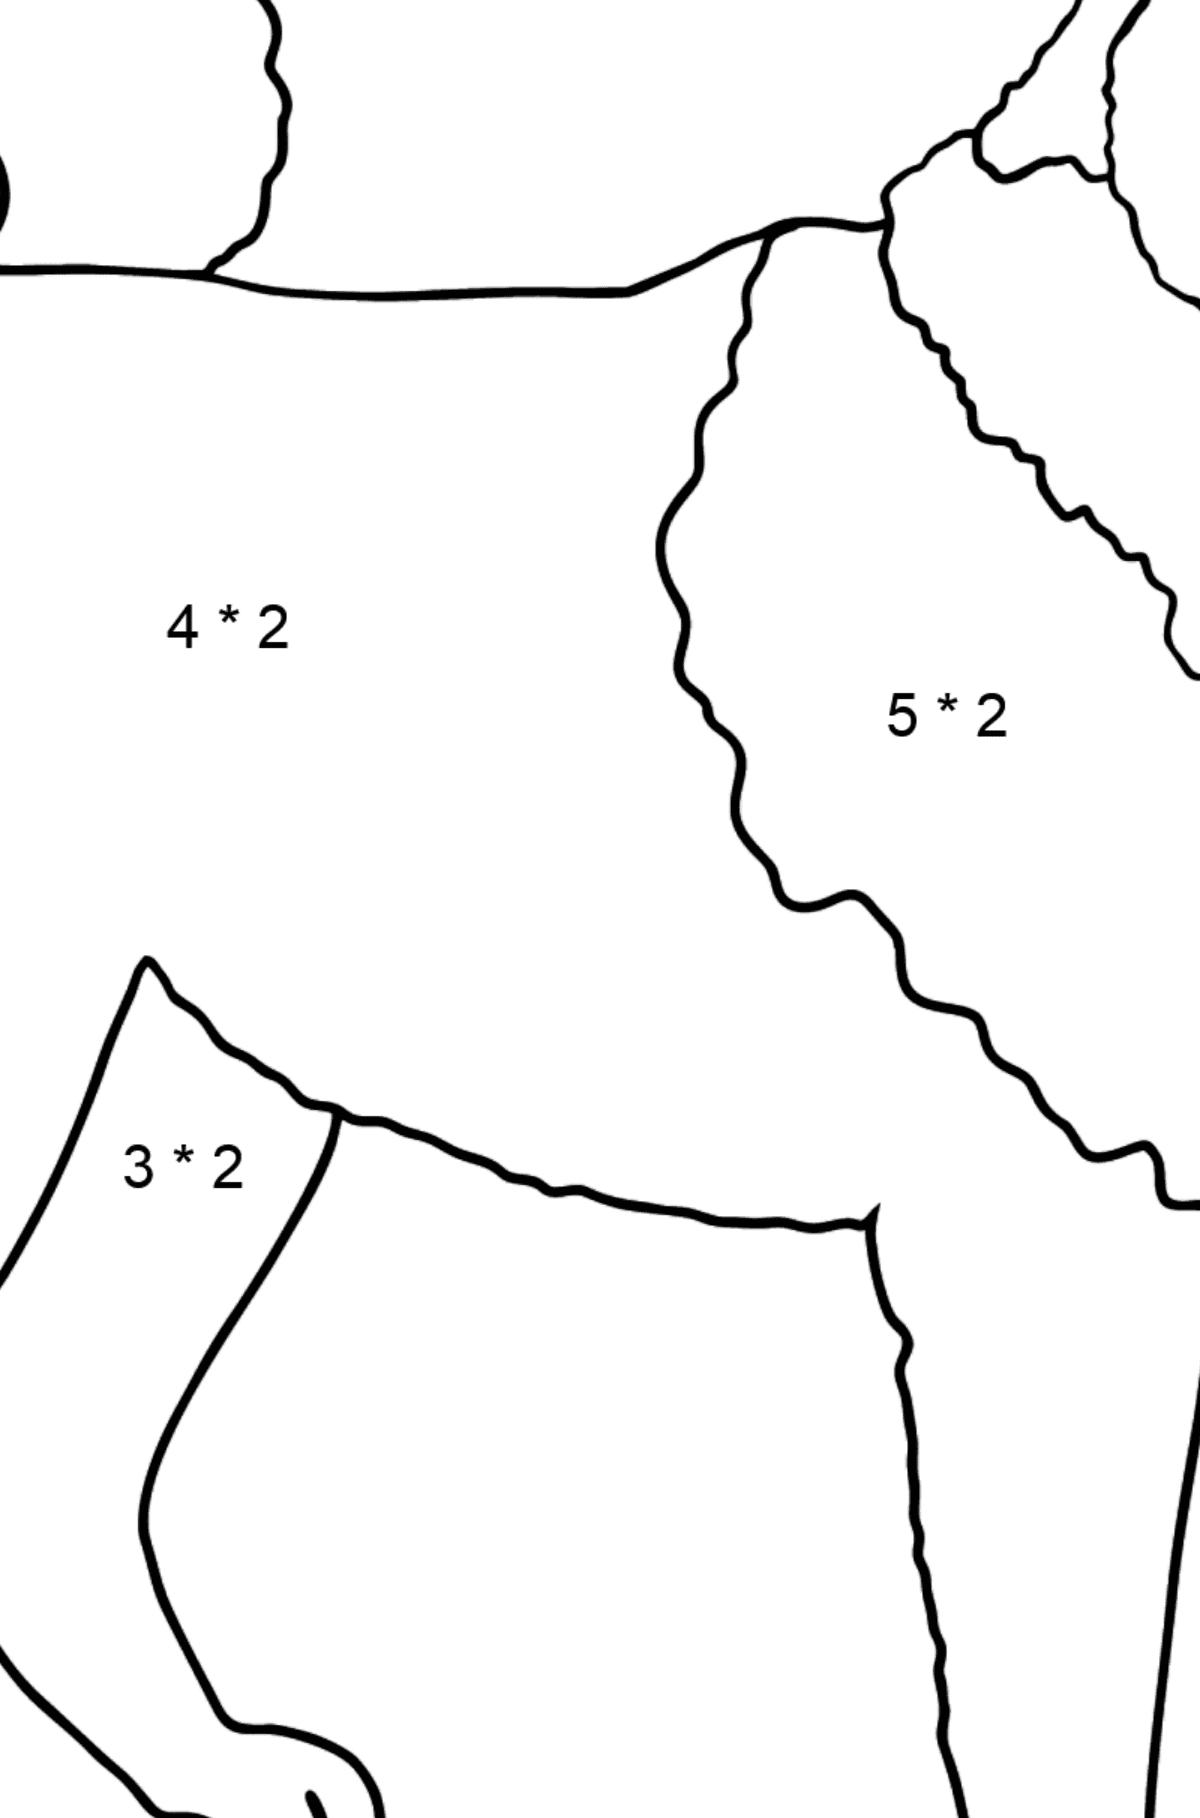 Siberian Husky coloring page - Math Coloring - Multiplication for Kids